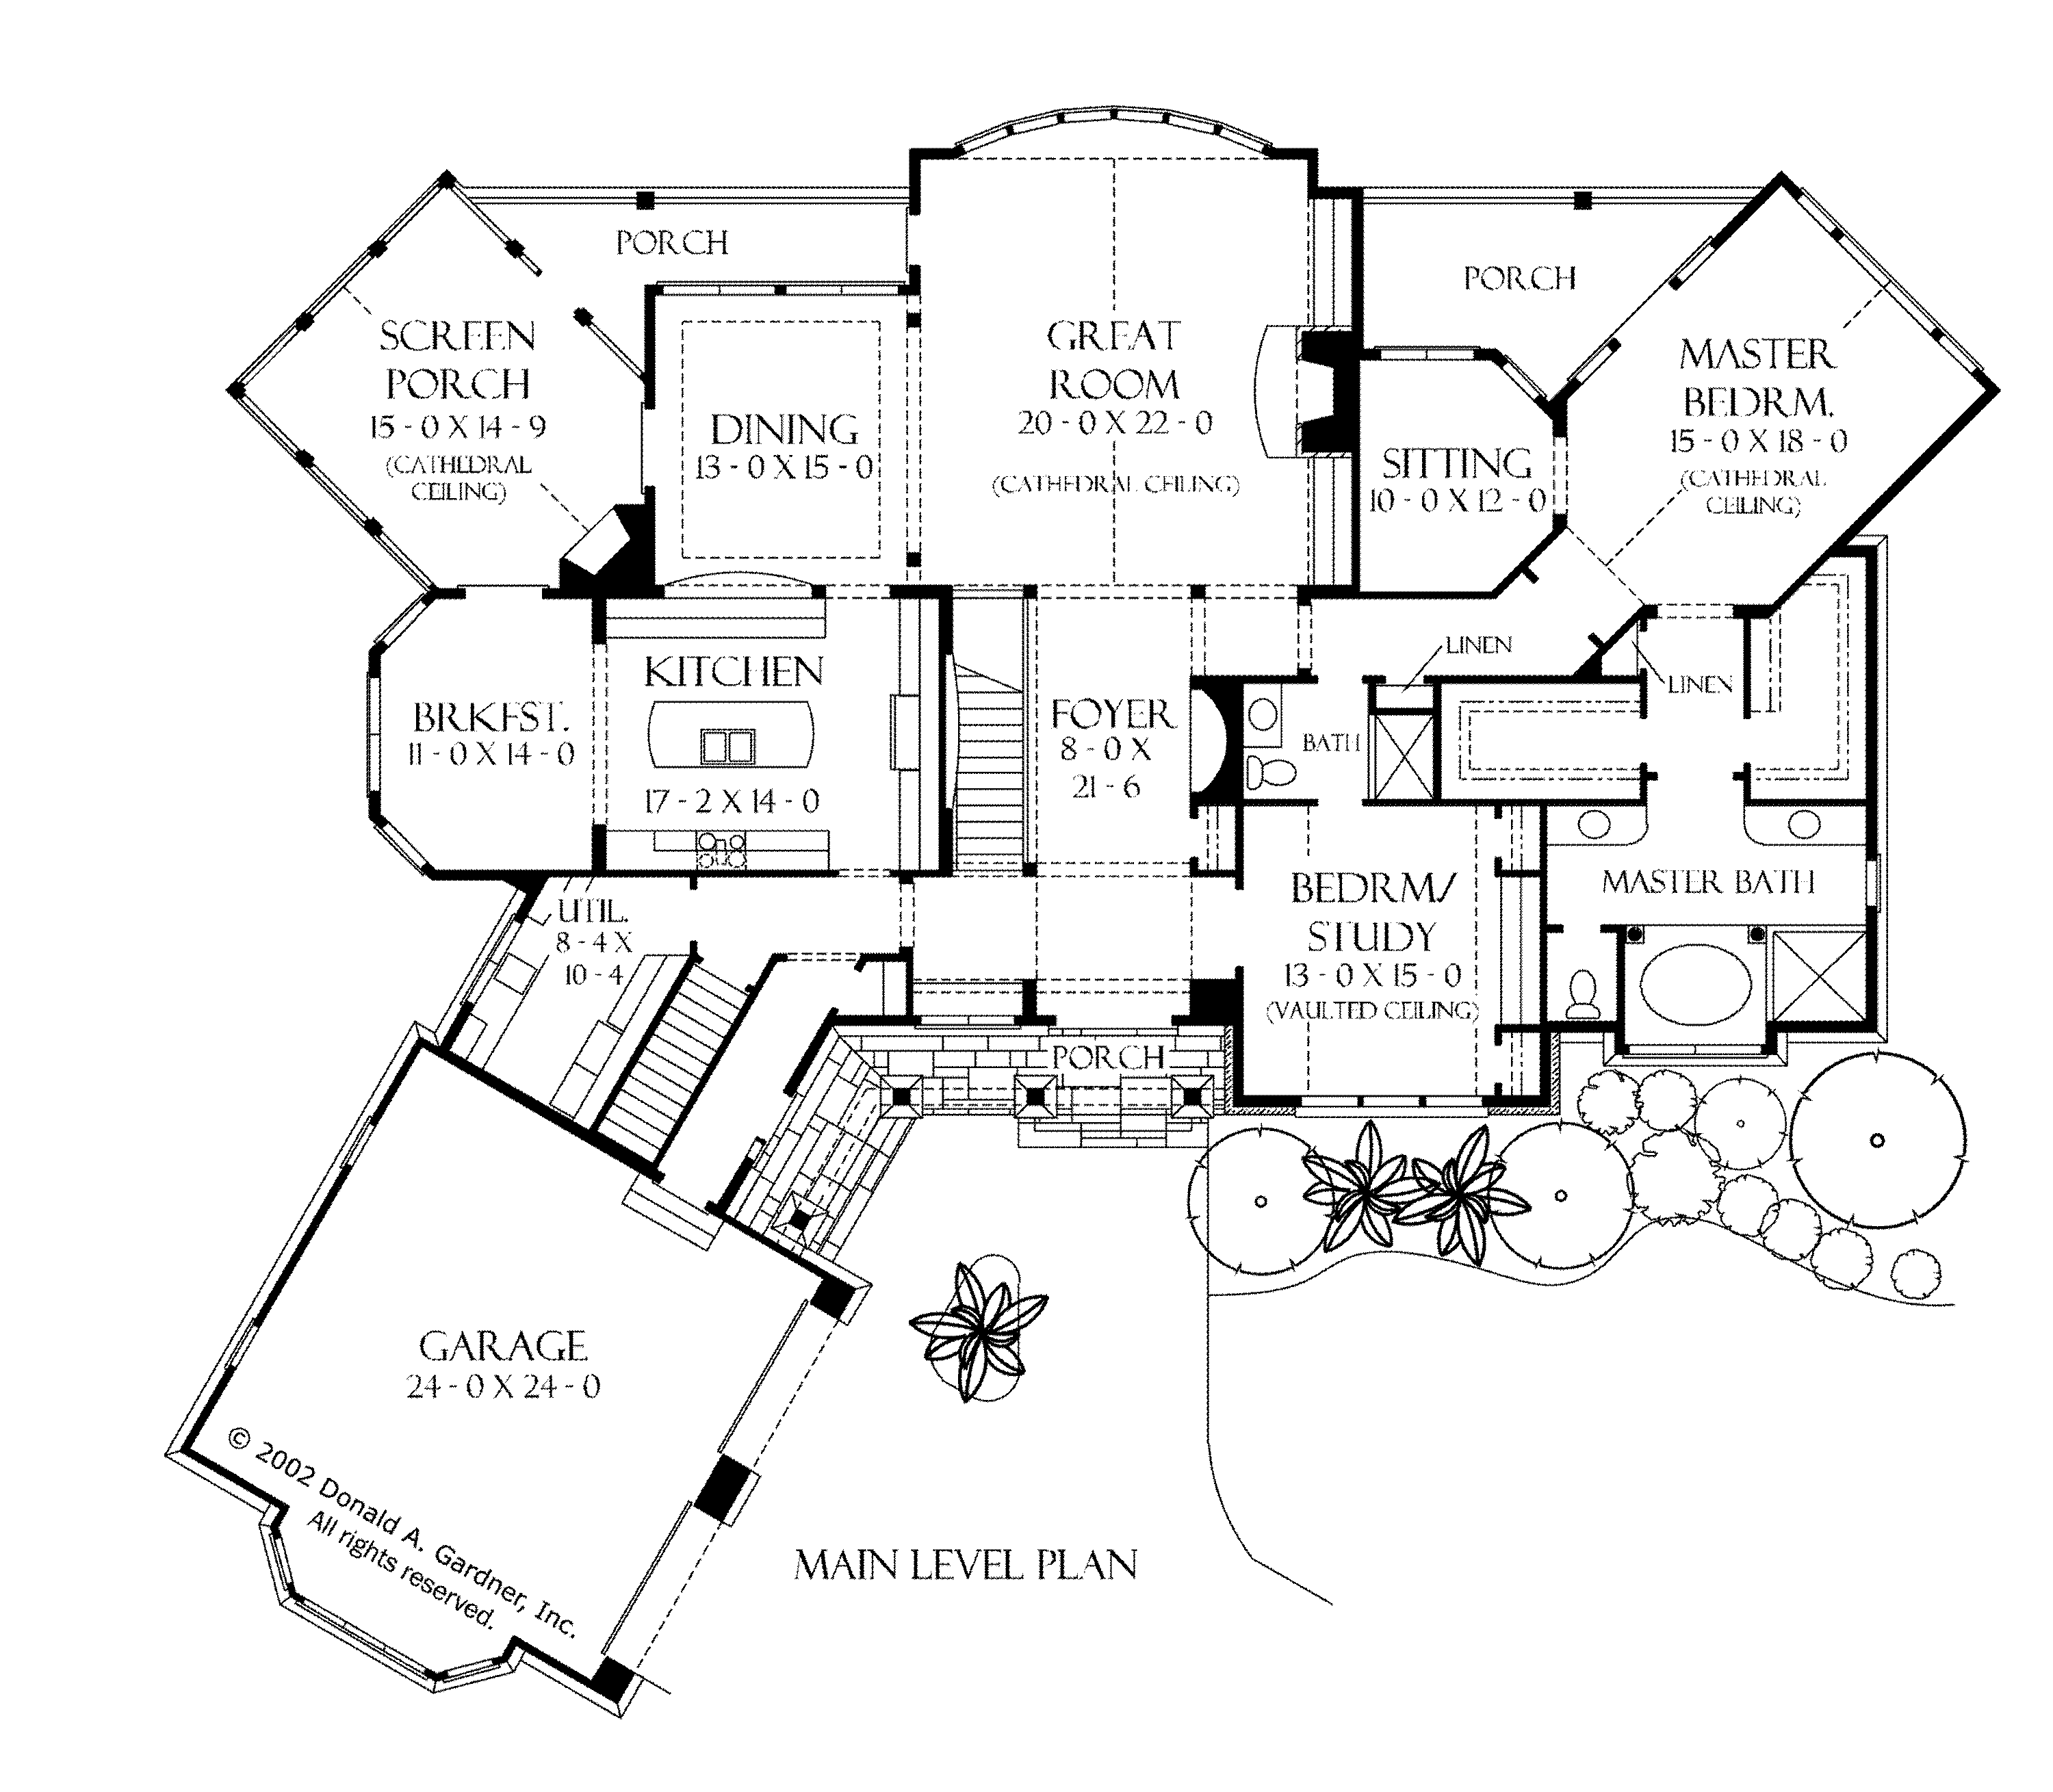 Architecture craftsman style homes floor plans story for Design your own blueprints